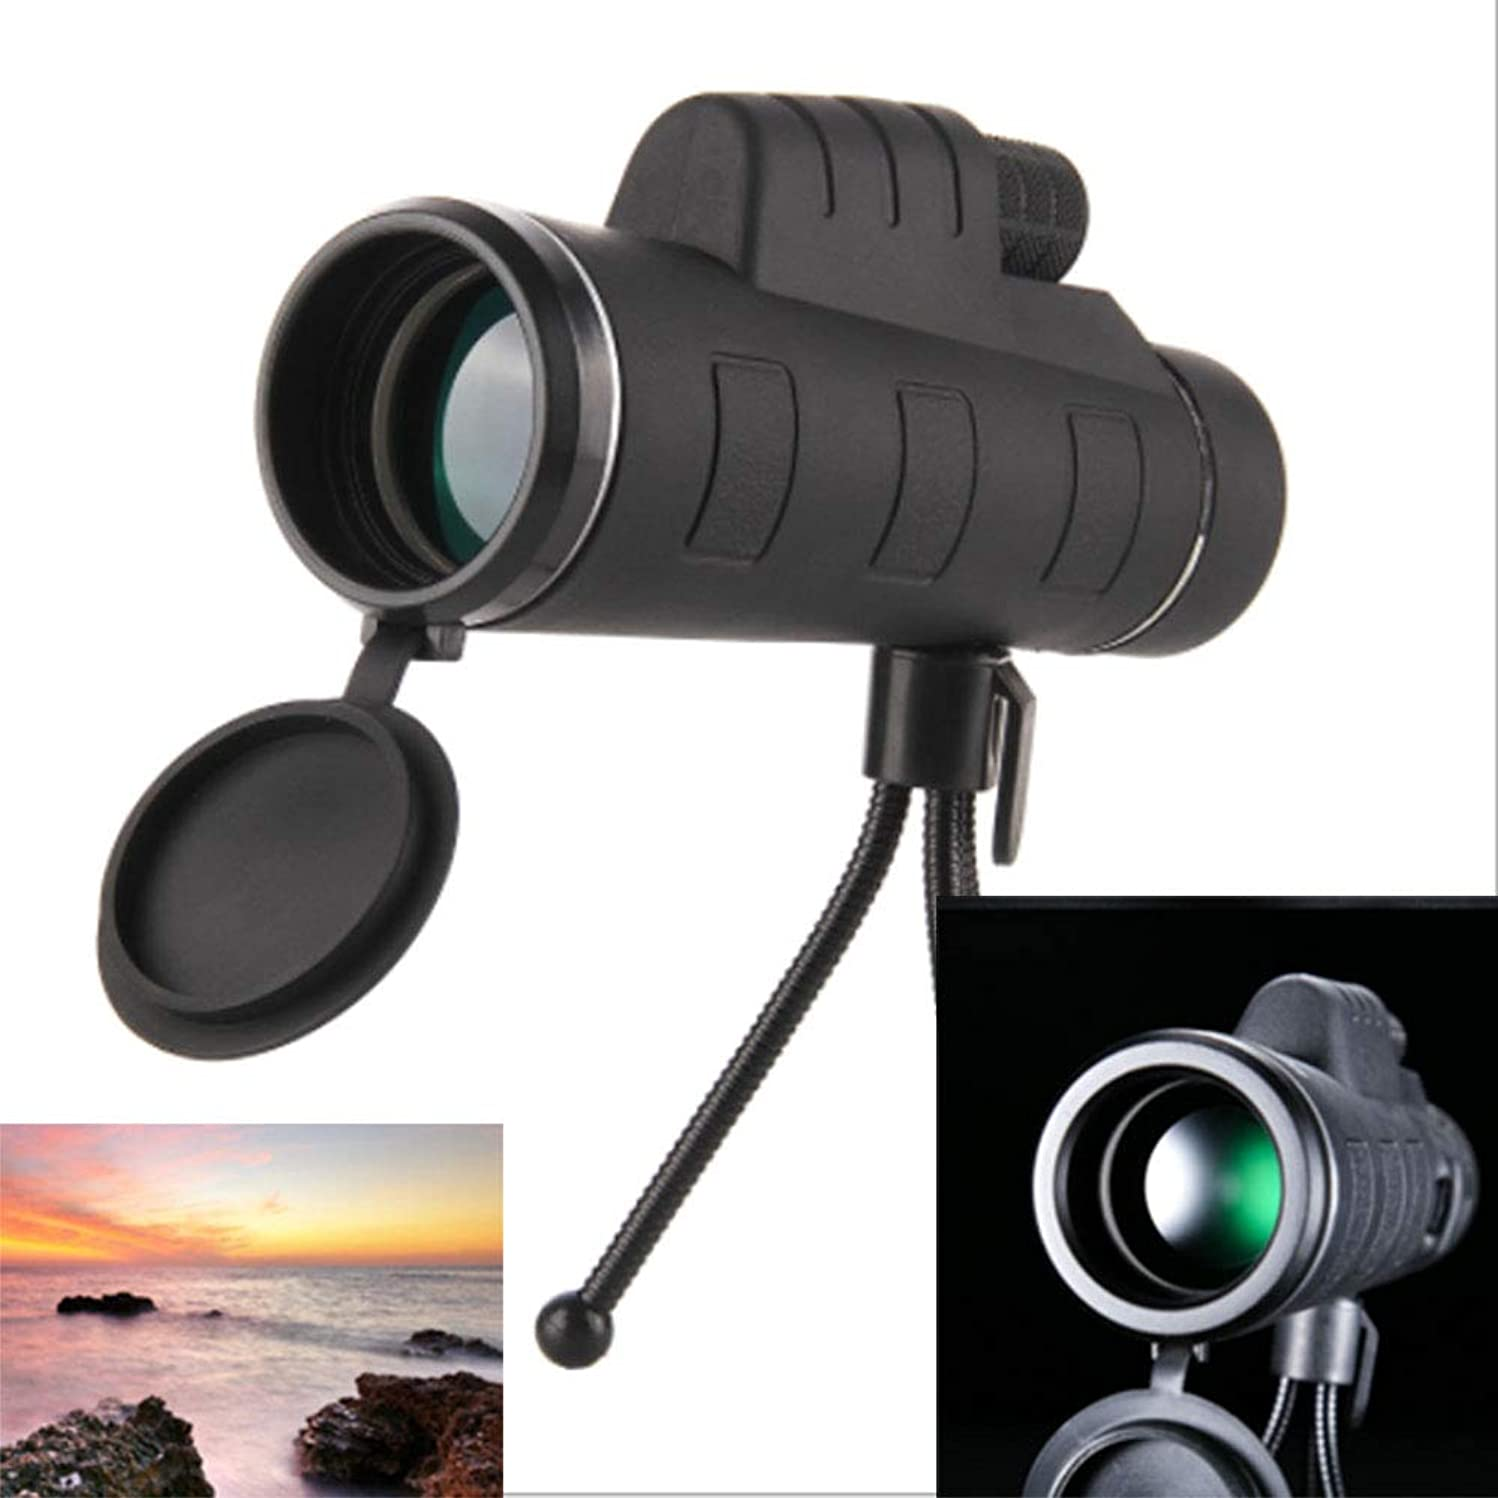 MCJL Pocket 35x50 Single Eye, Compact and Portable, Bird Watching Telescope, Waterproof and Anti-Fog, Low Light Night Vision, Suitable for Outdoor Hunting, Suitable for Adults and Children